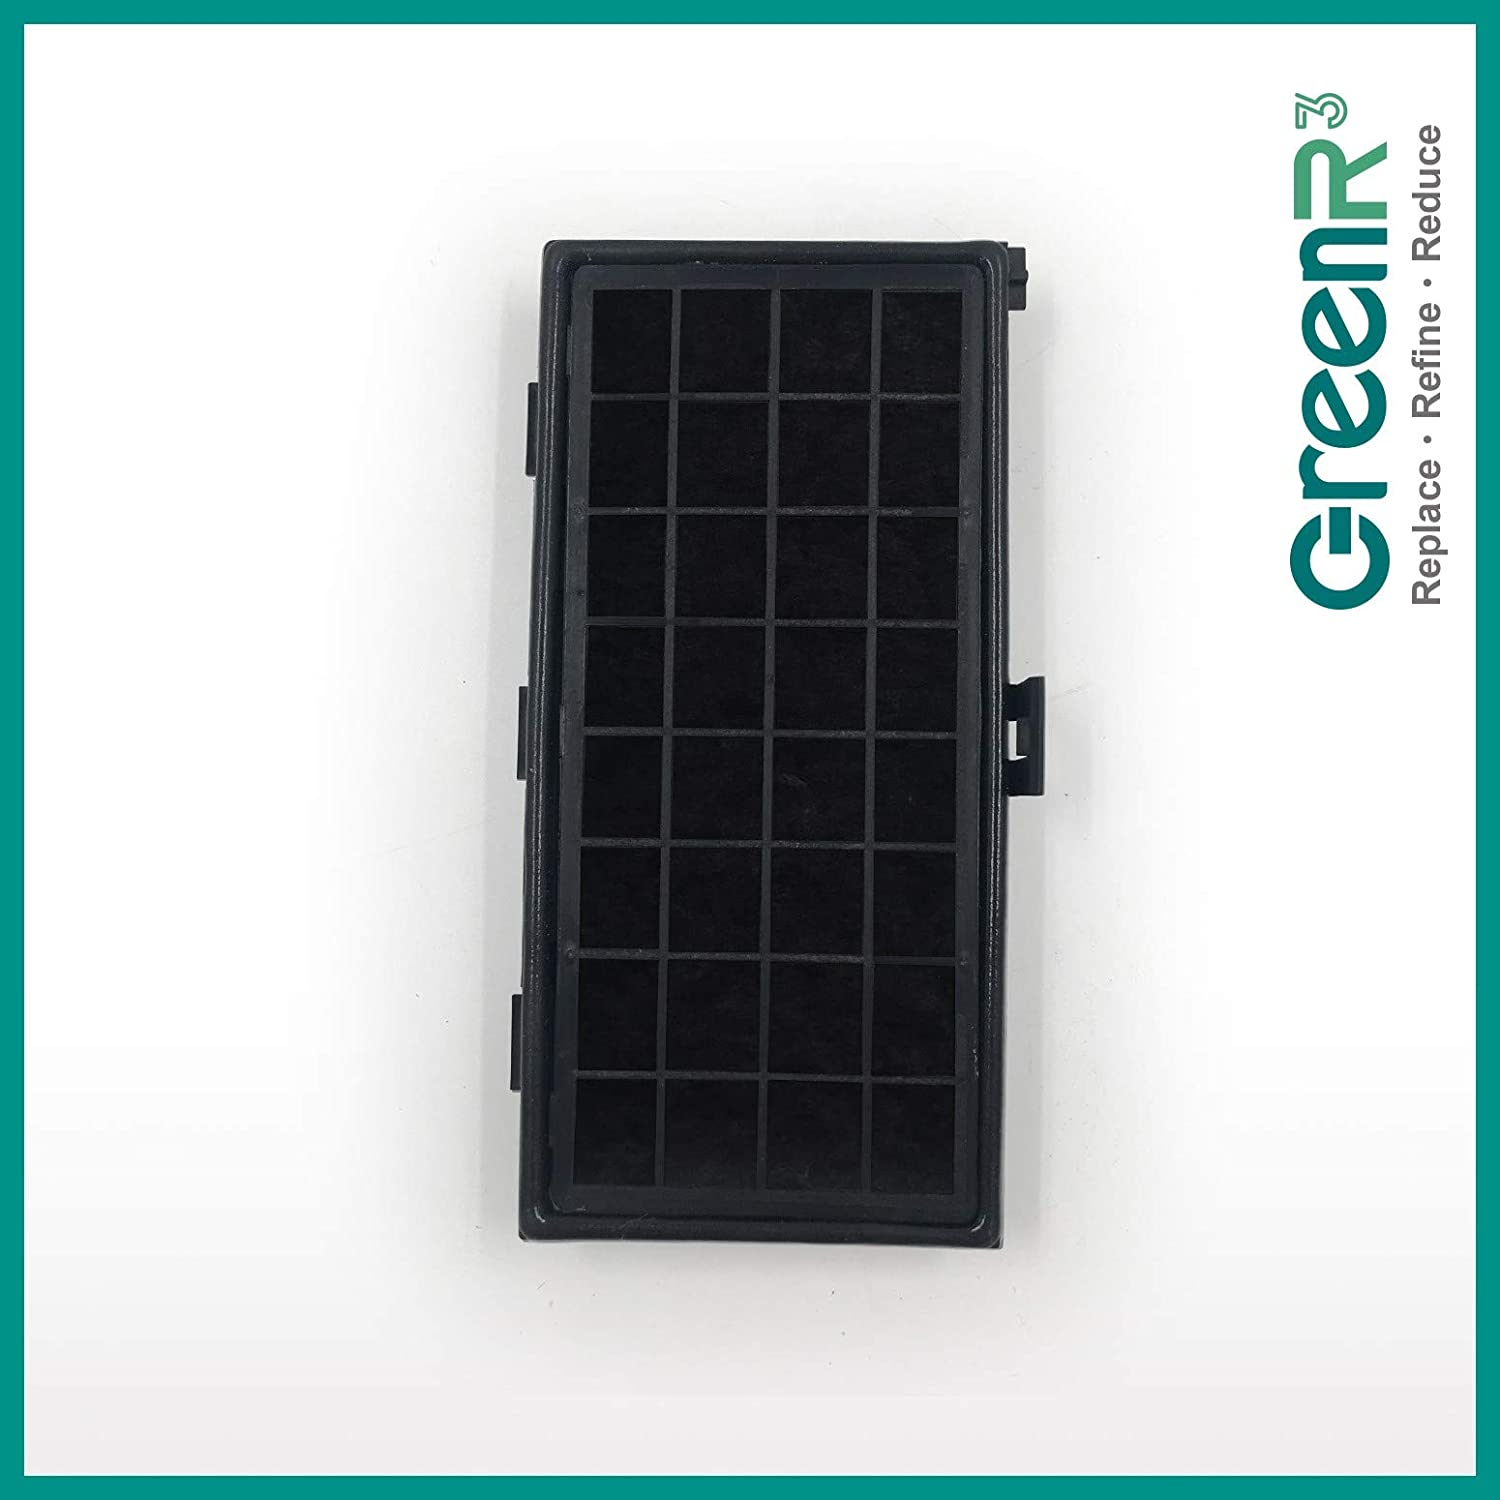 GreenR3 2-Pack Replacement HEPA Air Filters for Miele SF-AH30 Fits Miele S7000-S7999 S2000-S2999 S7000 S300i-S858i MIE1003 Miele 315606 C1 S300-S700 uprights canisters